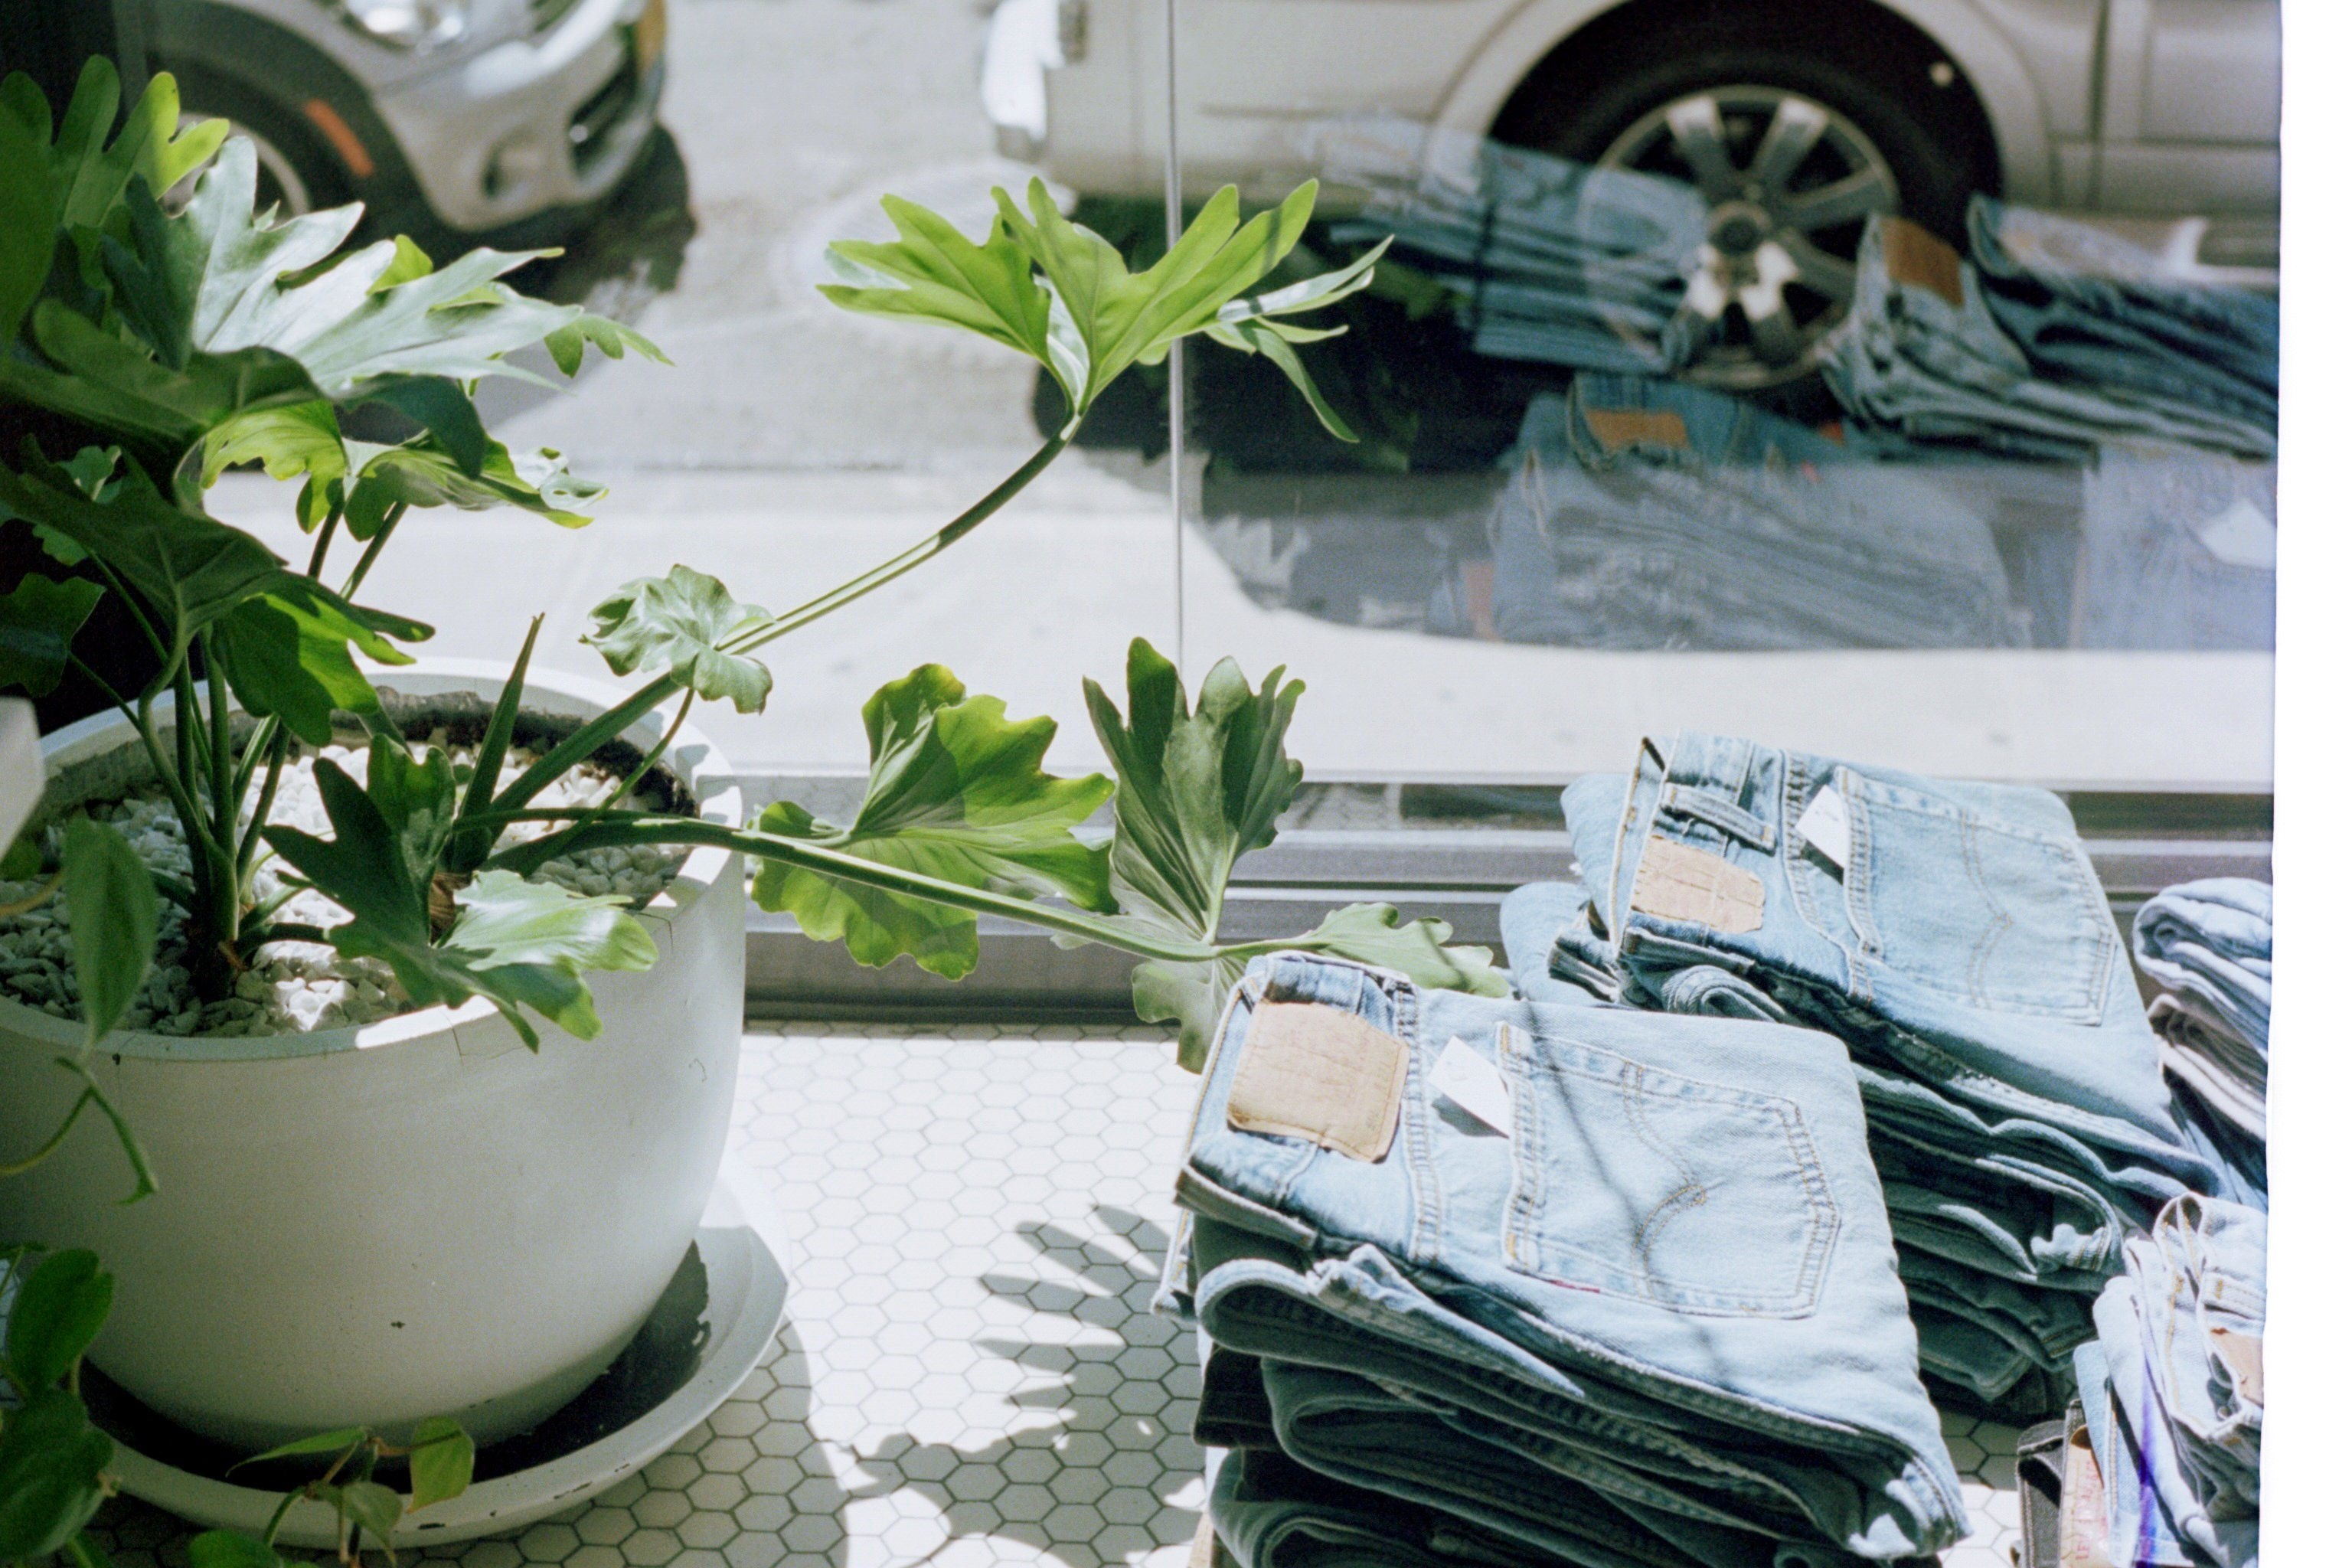 green leafed plant in white pot beside blue denim bottoms on table beside glass panel window